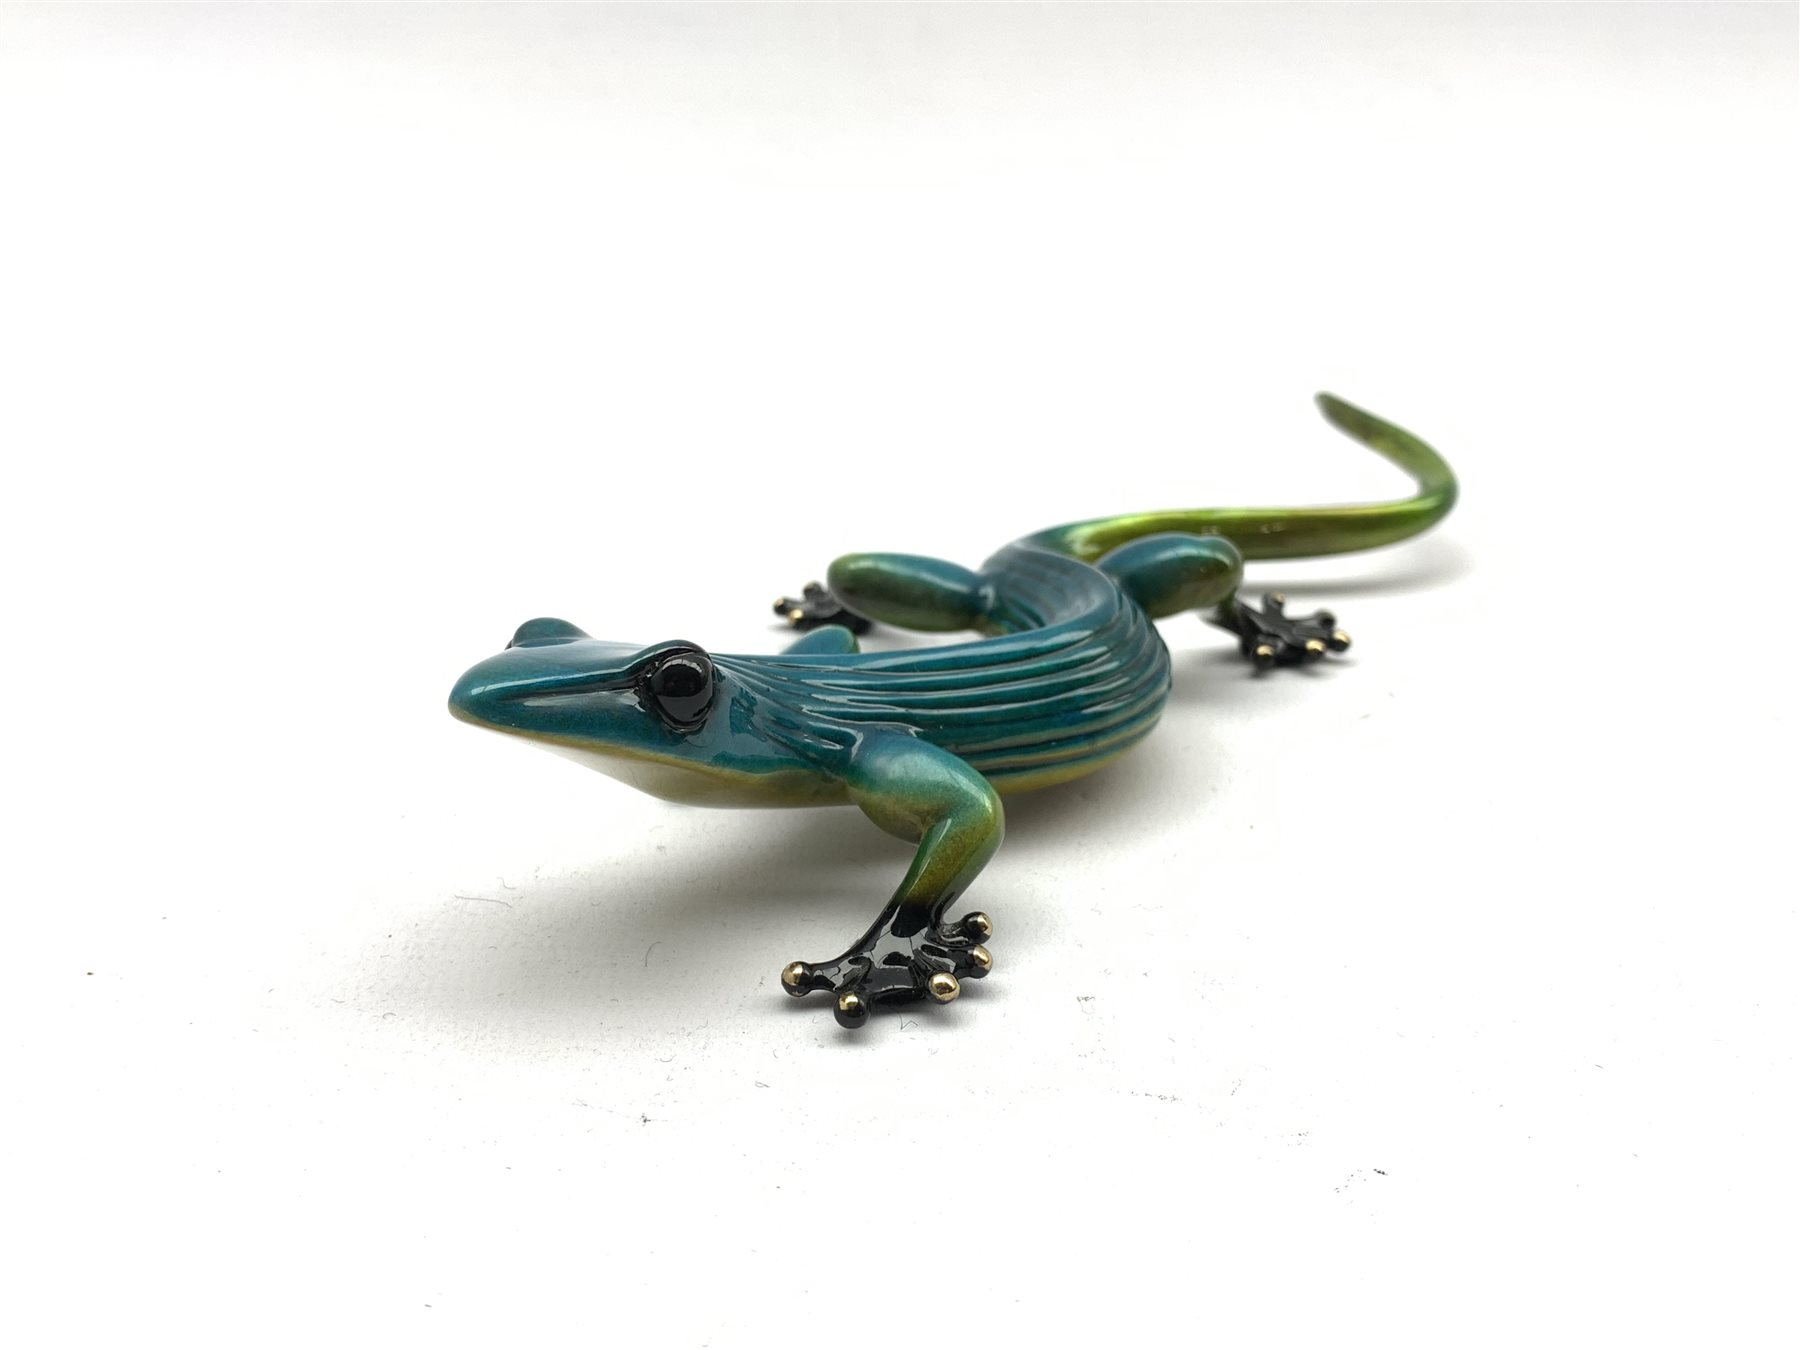 """Tim Cotterill (British 1950-): """"Ziggy"""" Frogman, limited edition released 2006 (287/1000) patina coat - Image 2 of 7"""